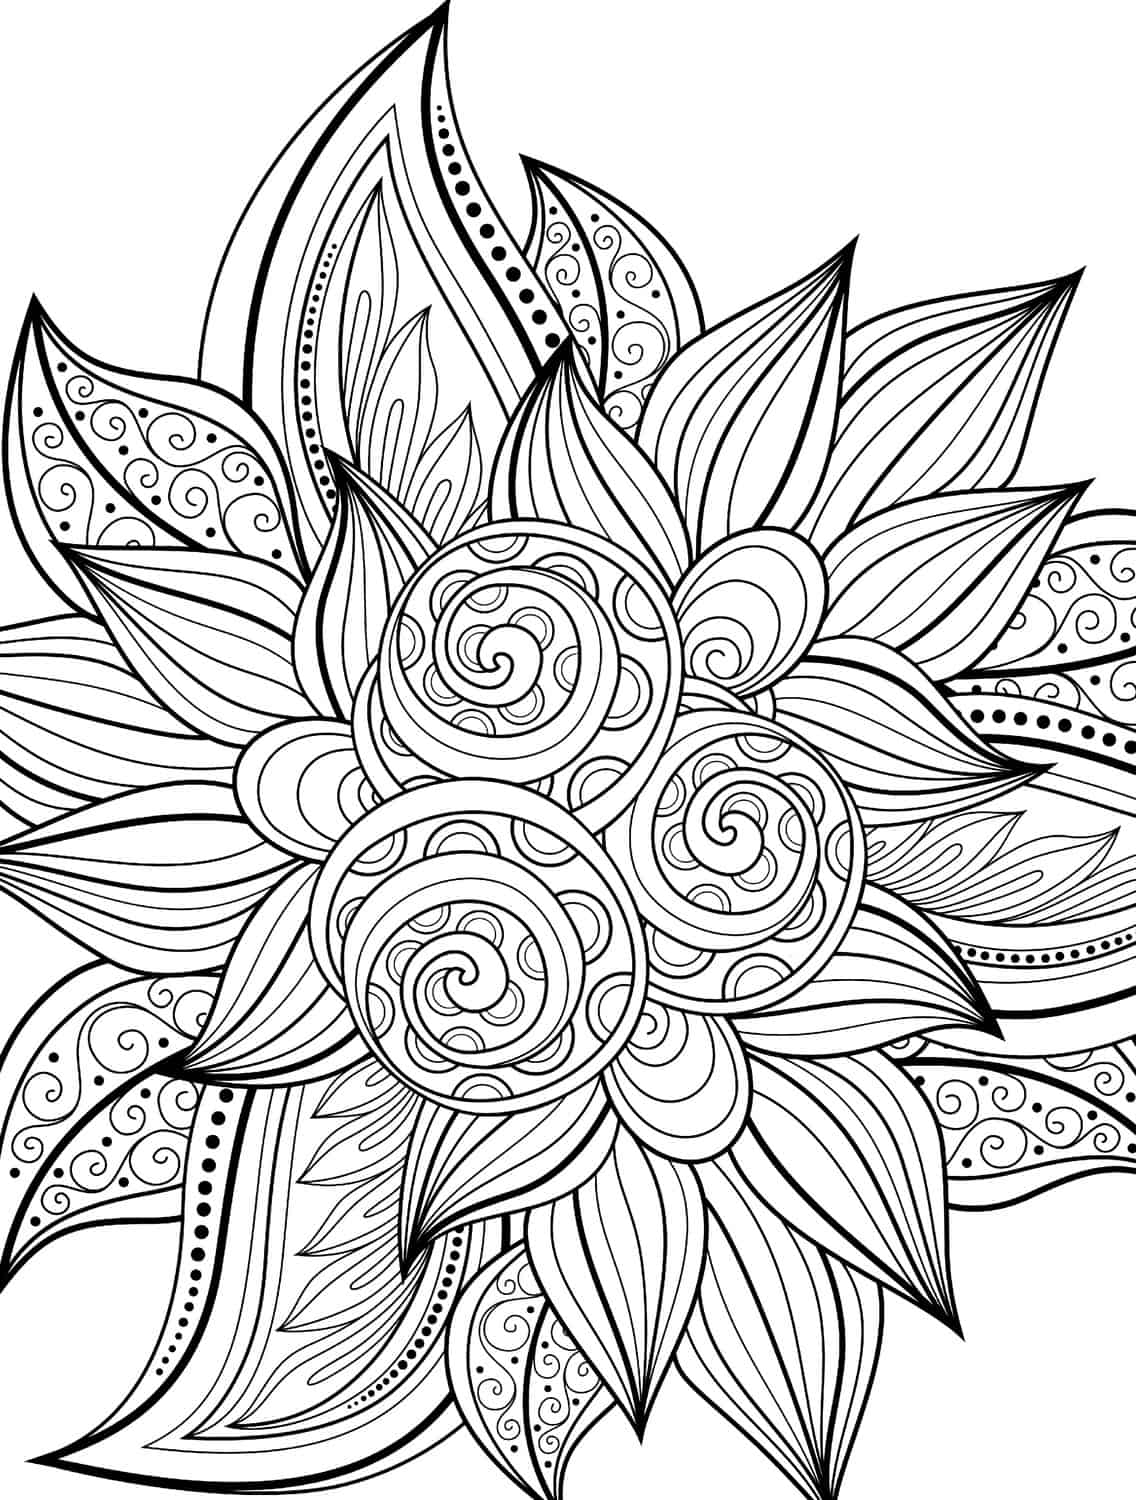 coloring books for adults free owl coloring pages for adults free detailed owl coloring coloring free books for adults